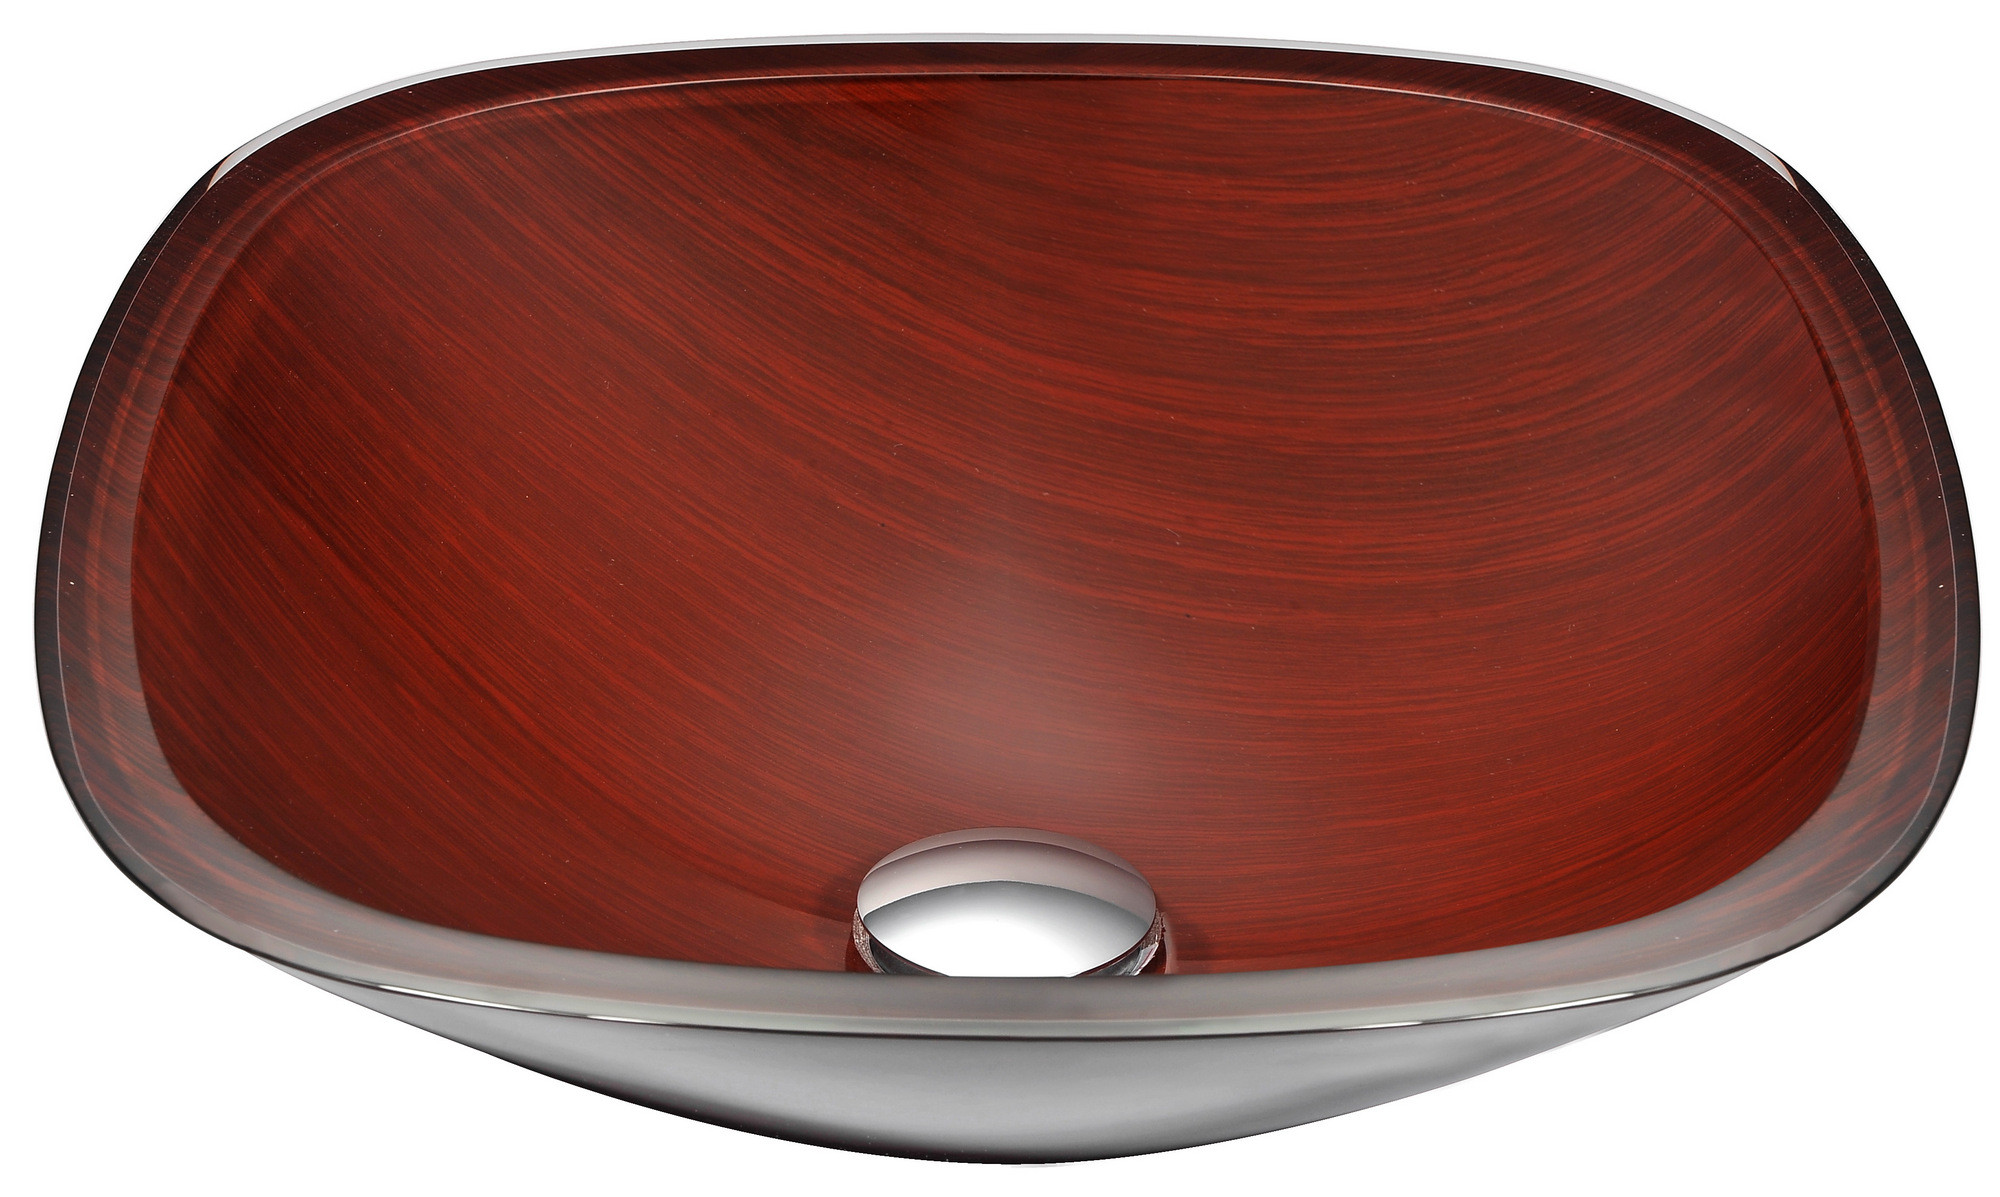 ANZZI LS-AZ066 Cansa Series Deco-Glass Vessel Sink In Rich Timber